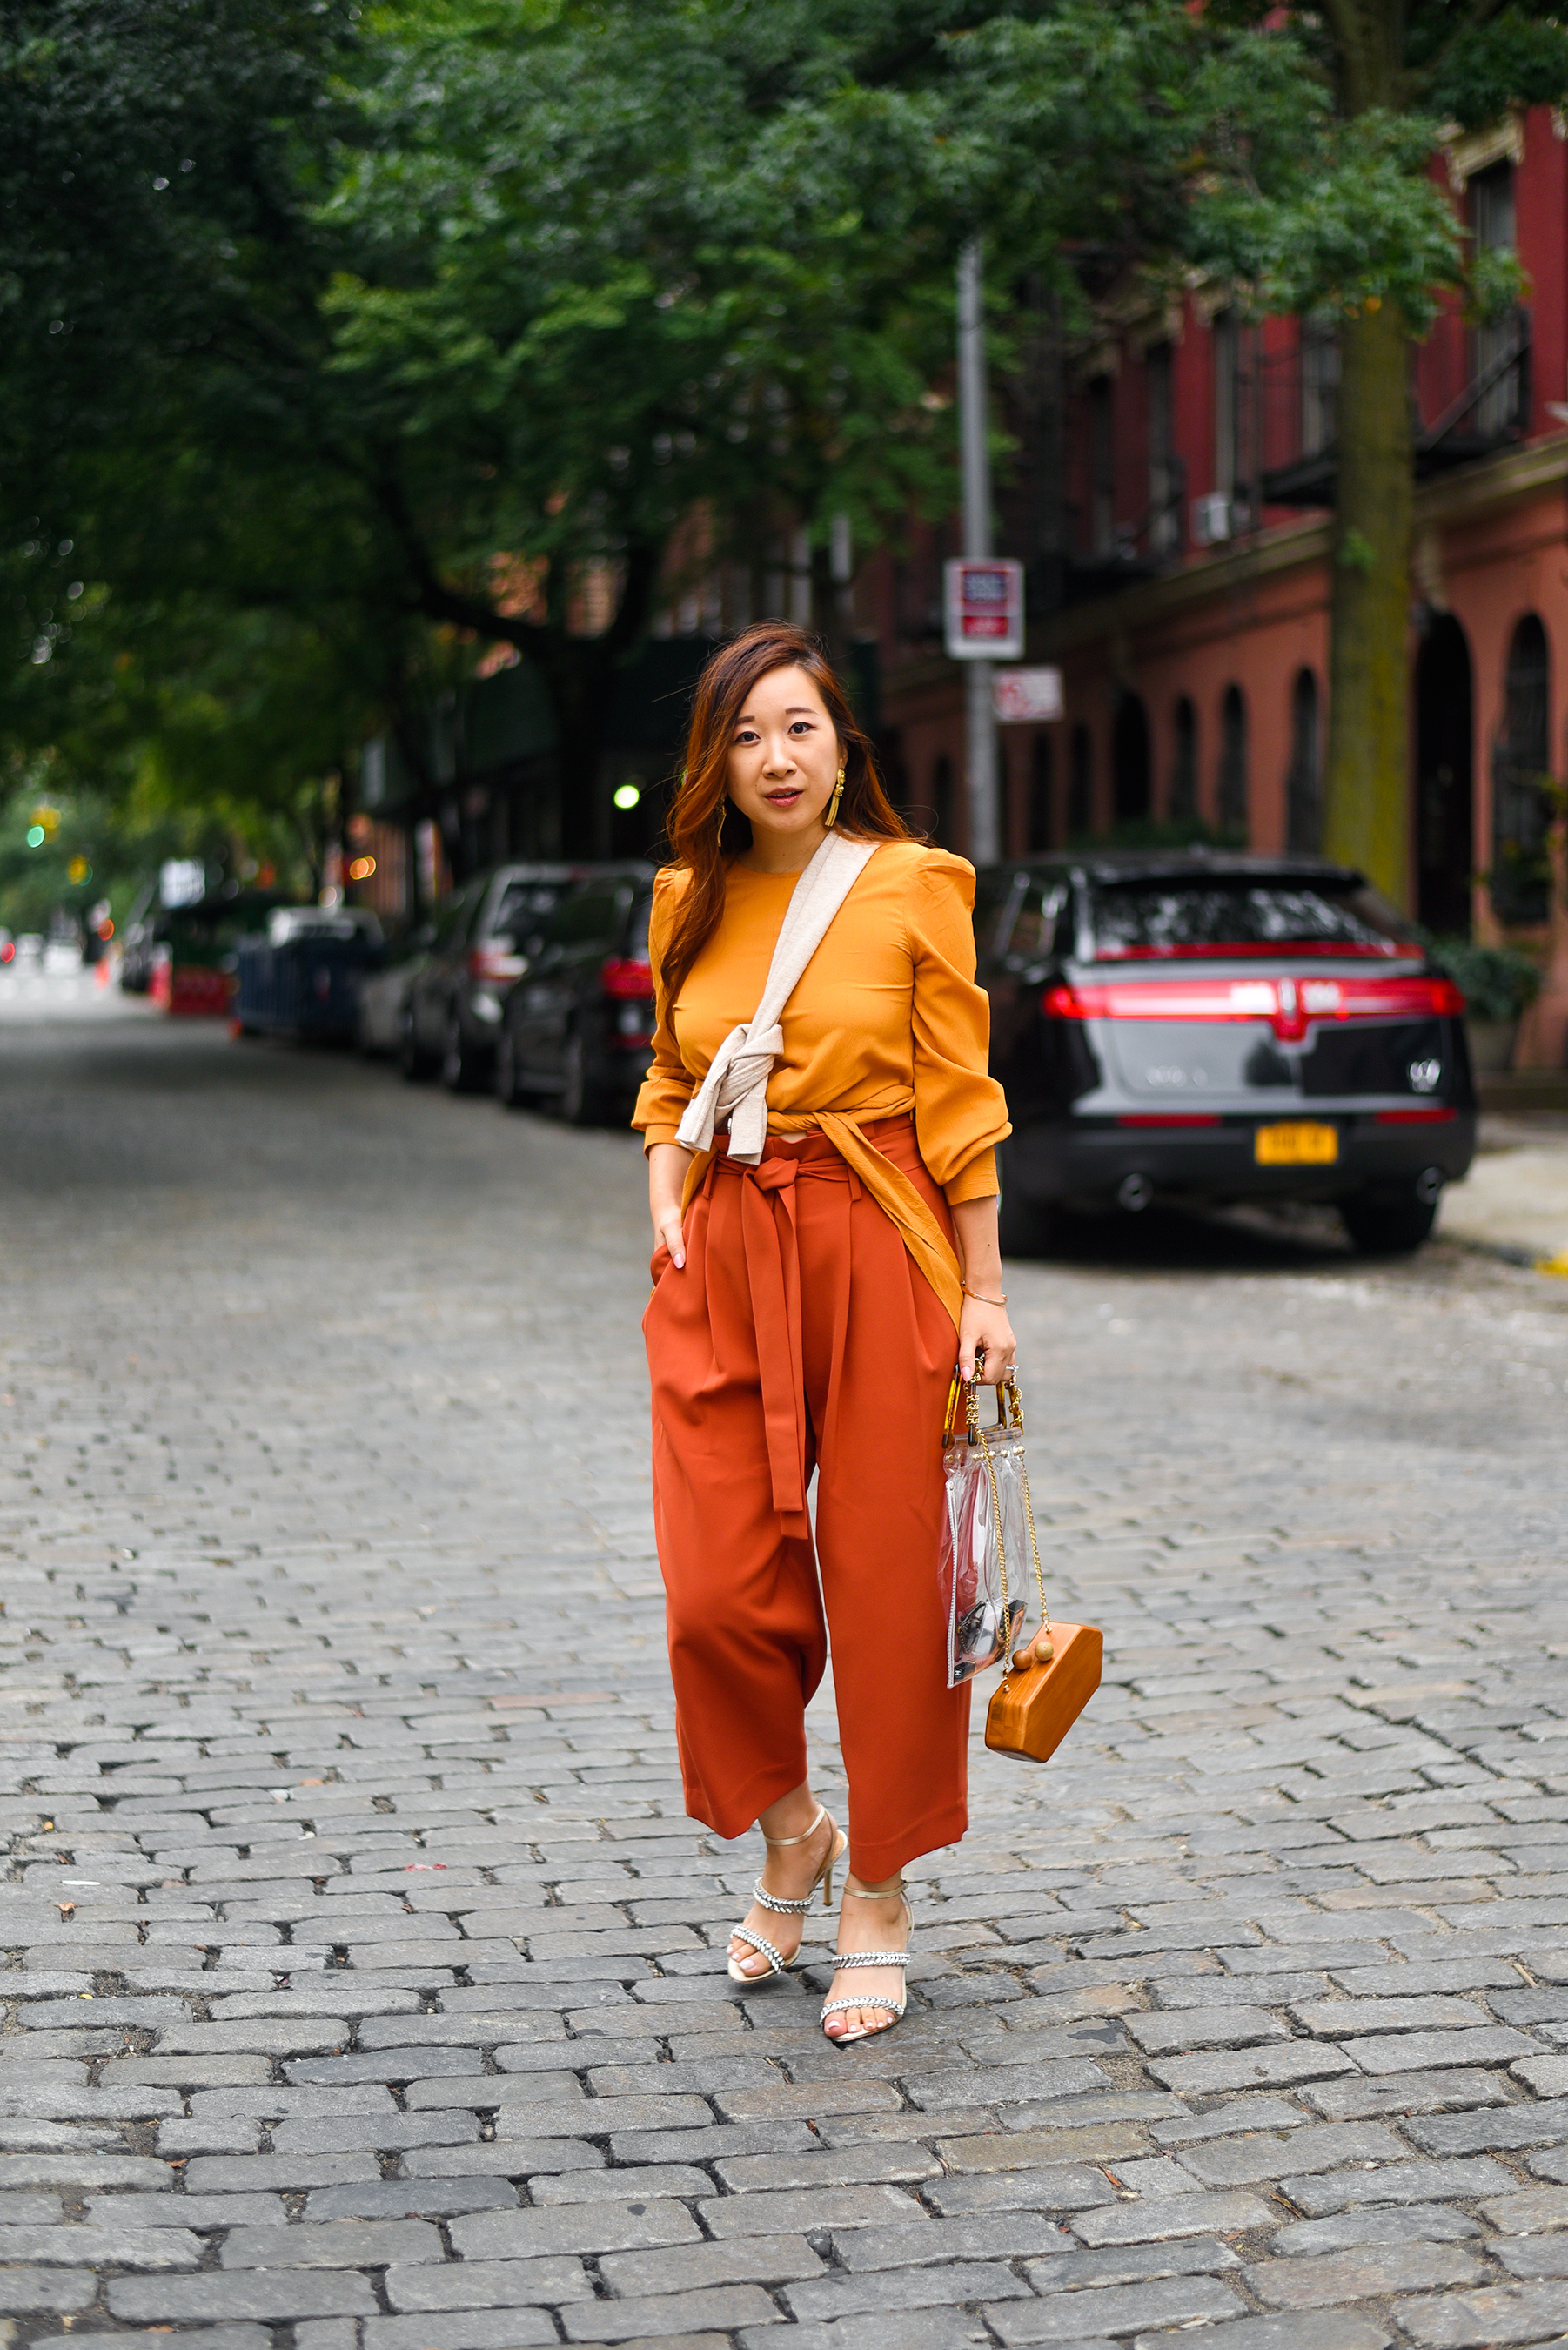 #NYFW Day 2 - Full on fall vibes.